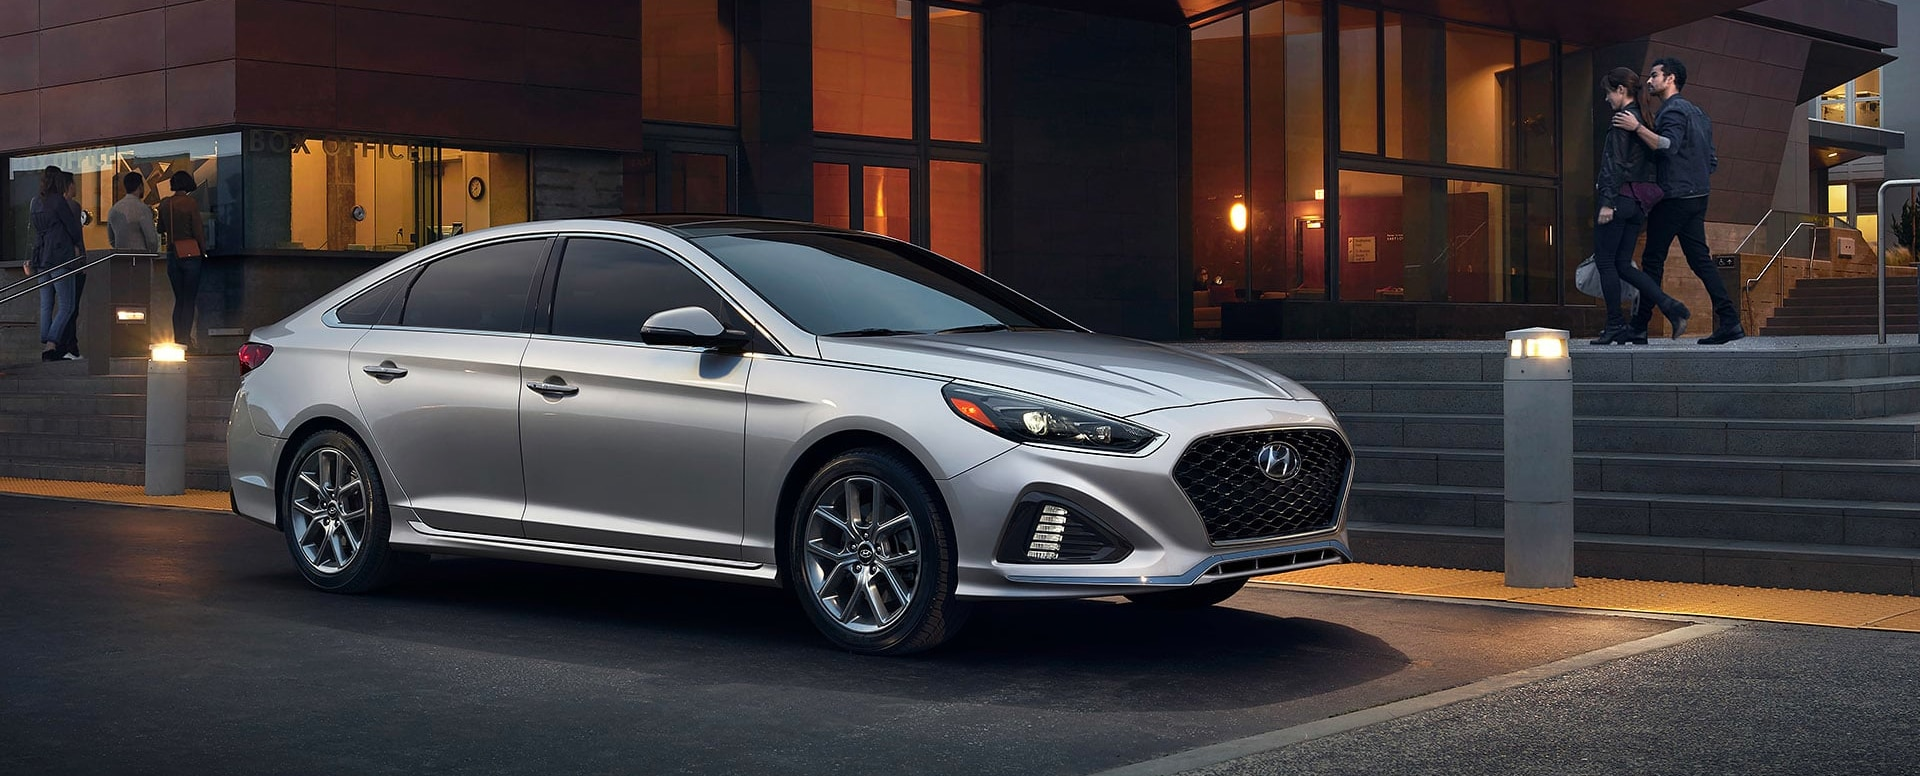 2018 Hyundai Sonata in Chicago IL